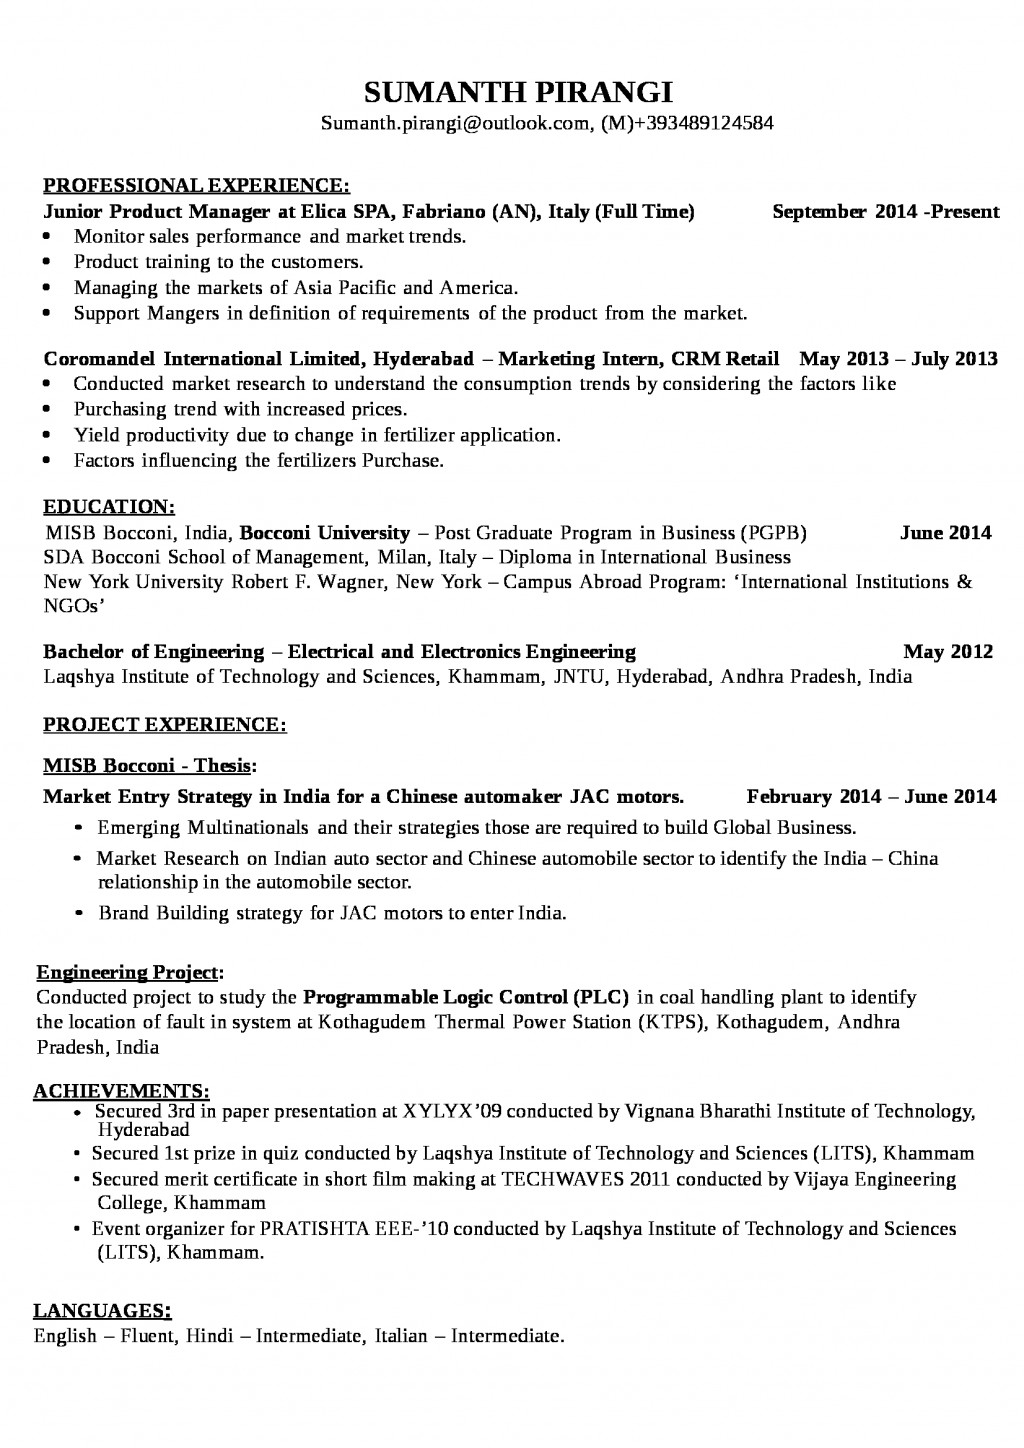 021 Research Paper Sumanth Pirangi Cv Essay On Education System In India And Magnificent Abroad Large